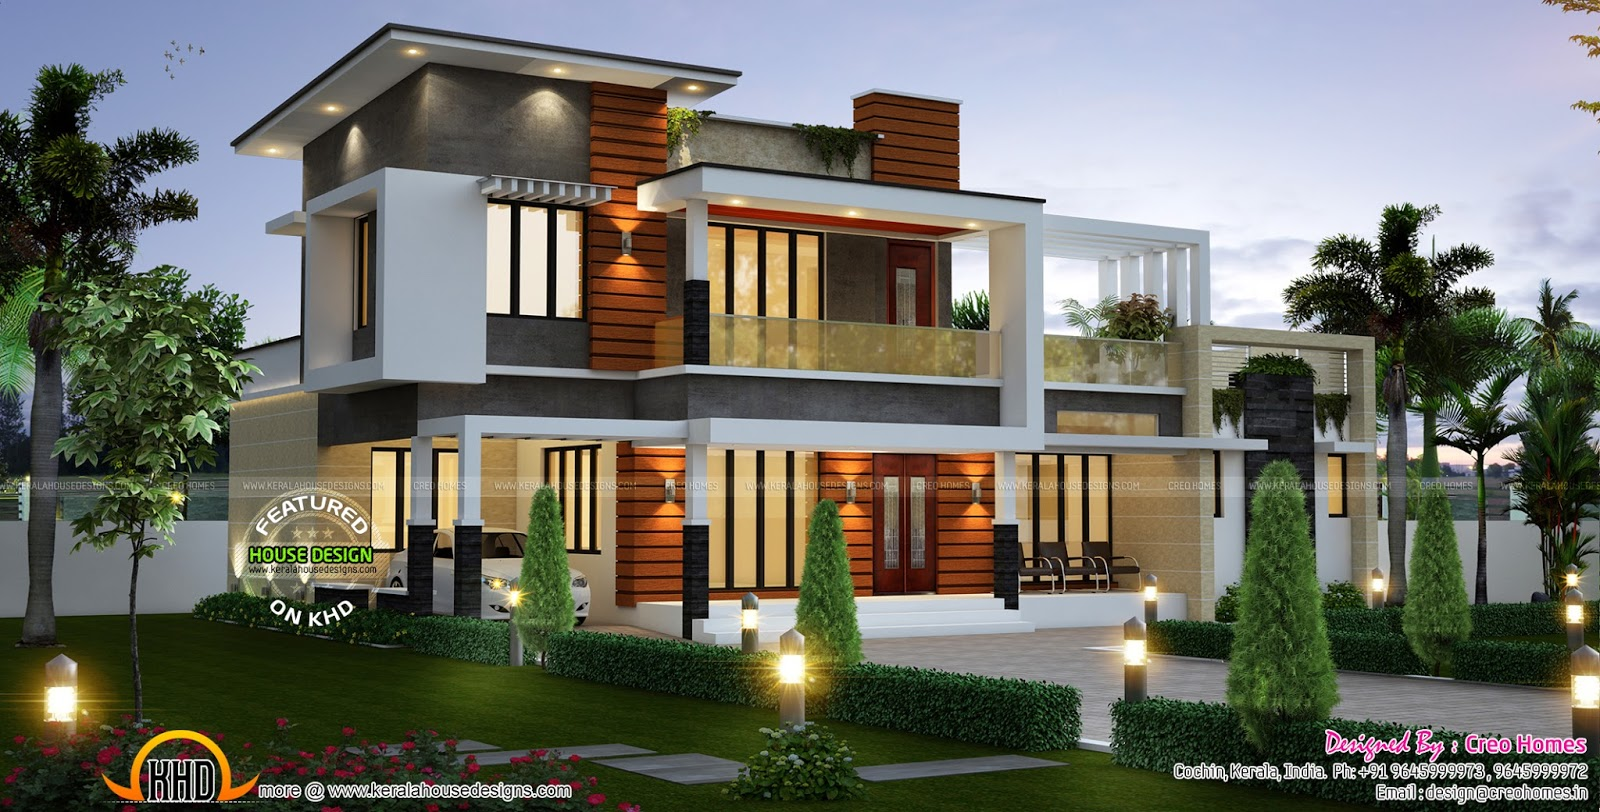 3 bedroom modern completed house keralahousedesigns for Modern 3 bedroom house plans and designs